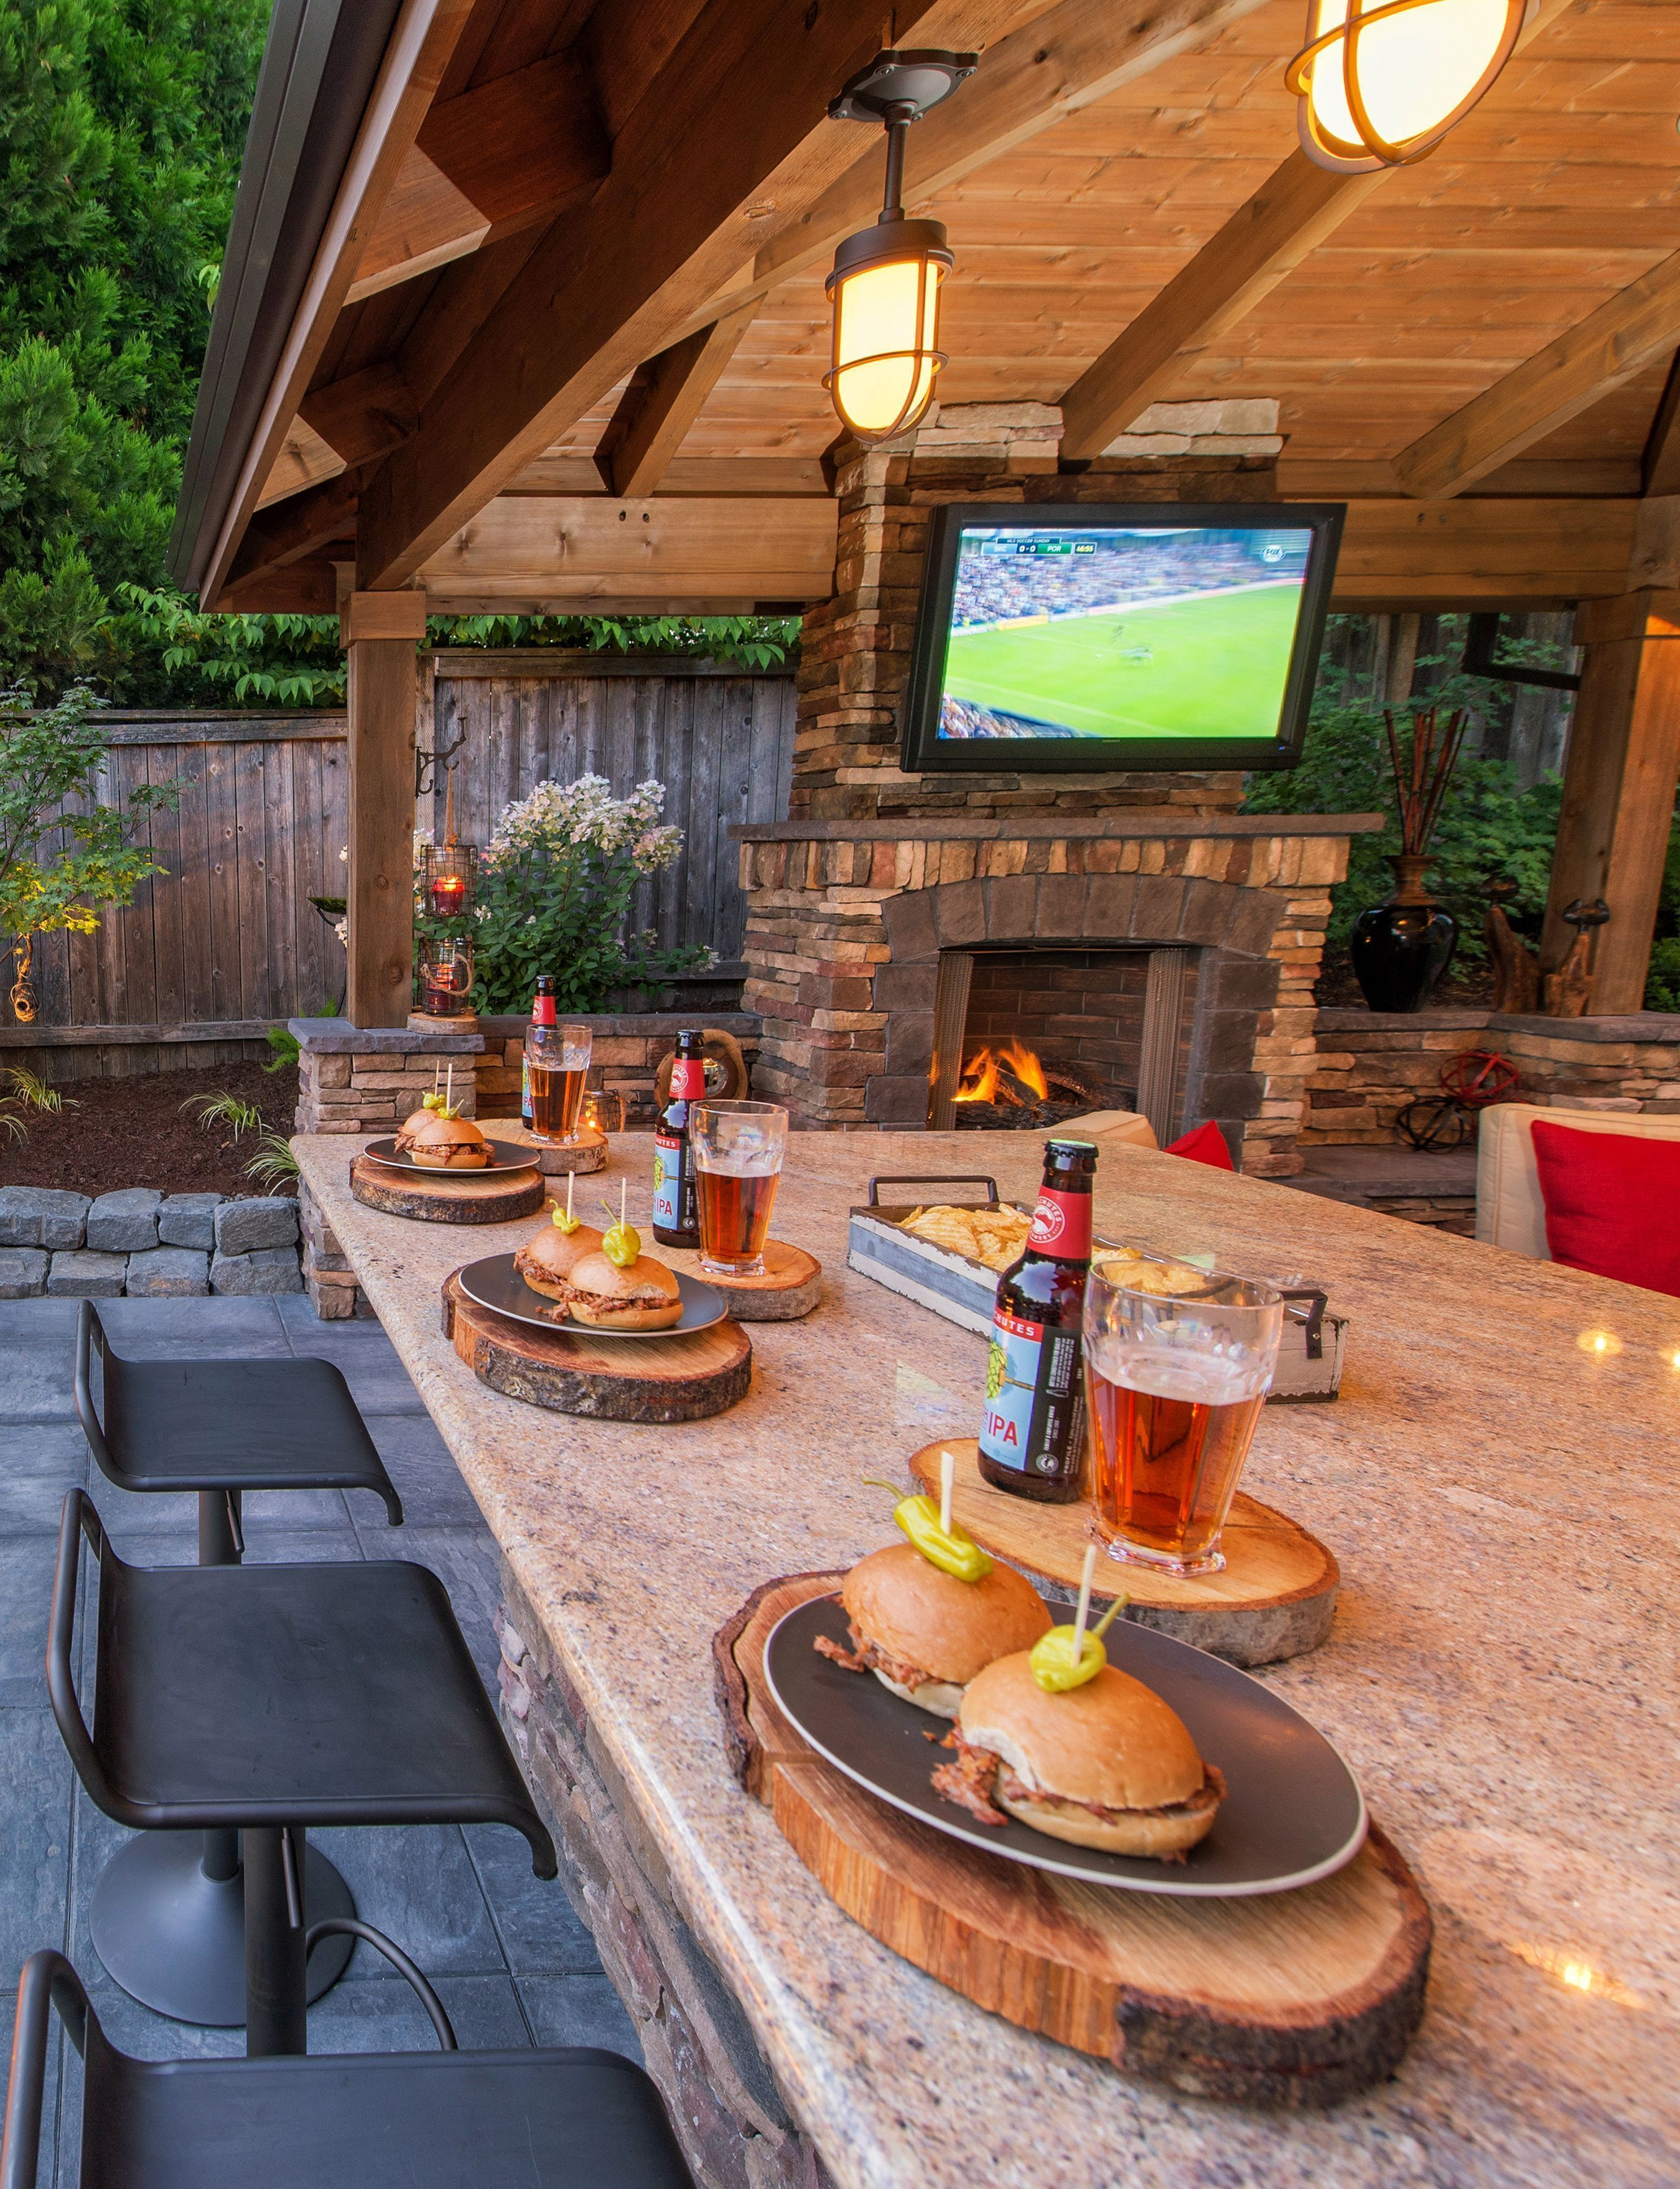 fbee2f0b6d84517e15202cbdc1b0b6e1 Top Result 50 Awesome Cost Of Outdoor Fireplace Picture 2018 Zat3